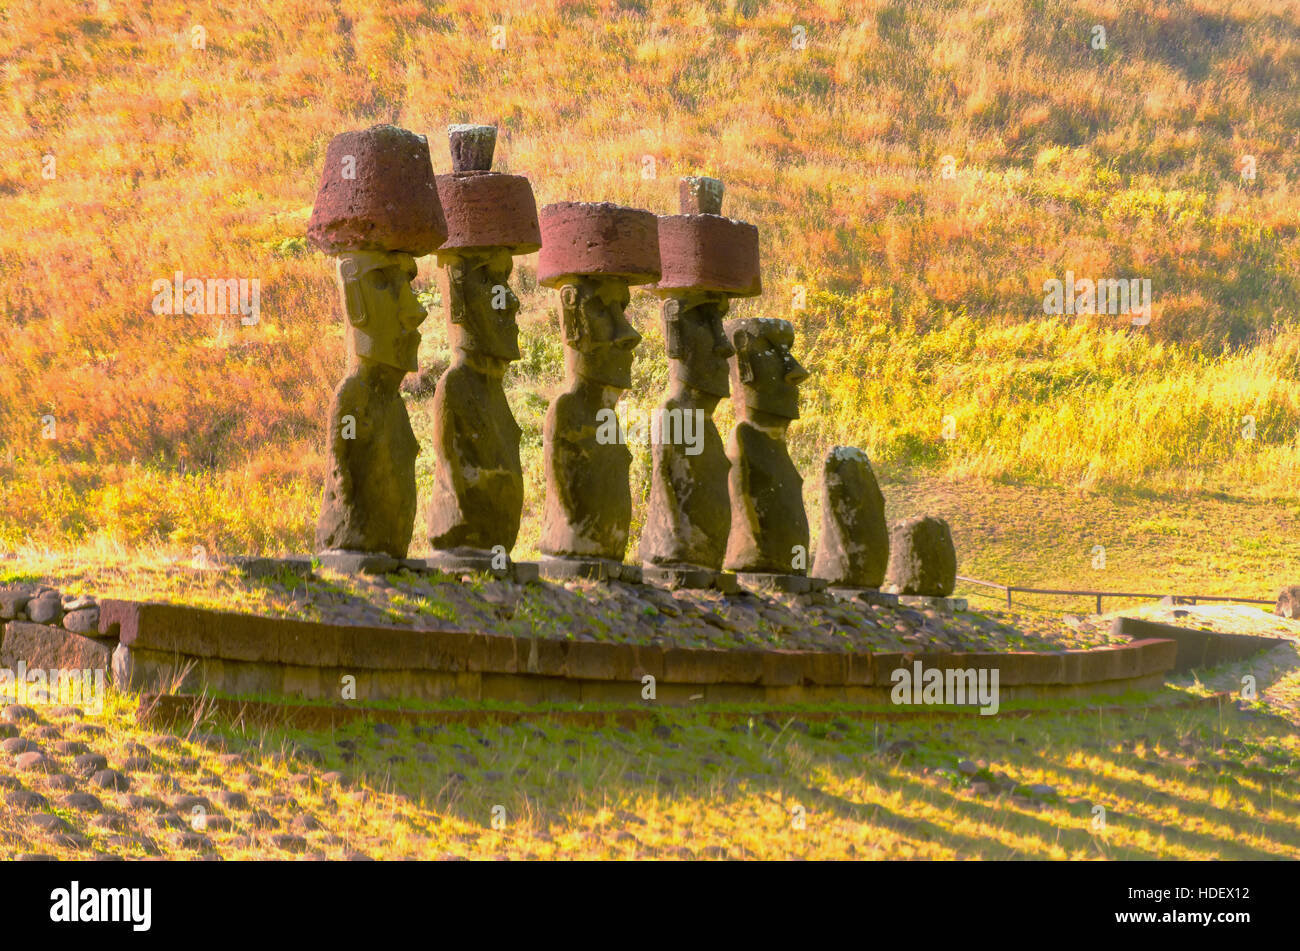 Moai statues wear Pukaos at Anakena Beach on Easter Island in Chile - Stock Image